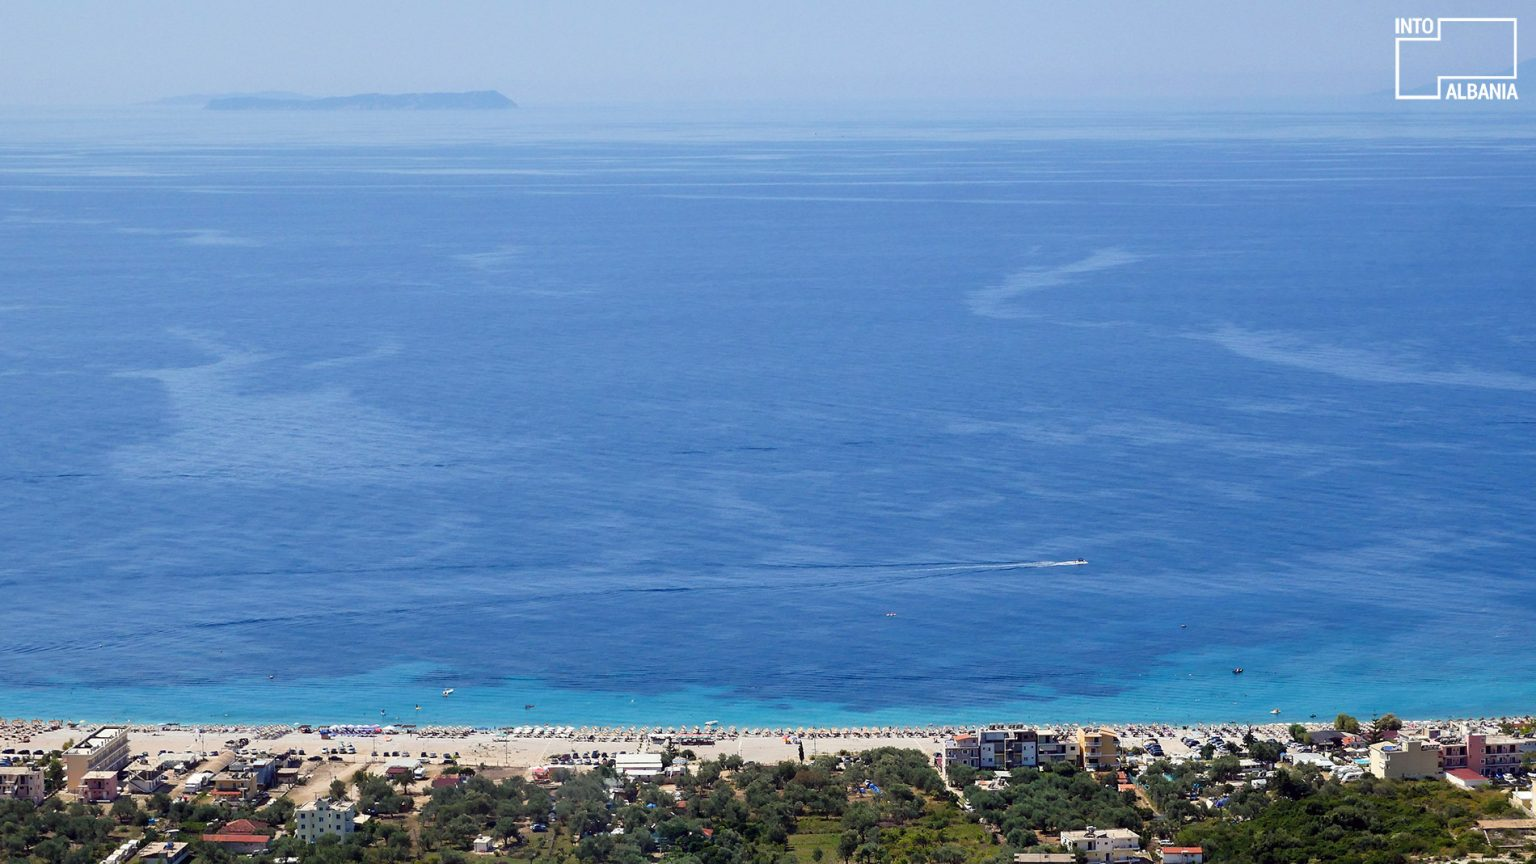 Albainan Riviera, photo by IntoAlbania.